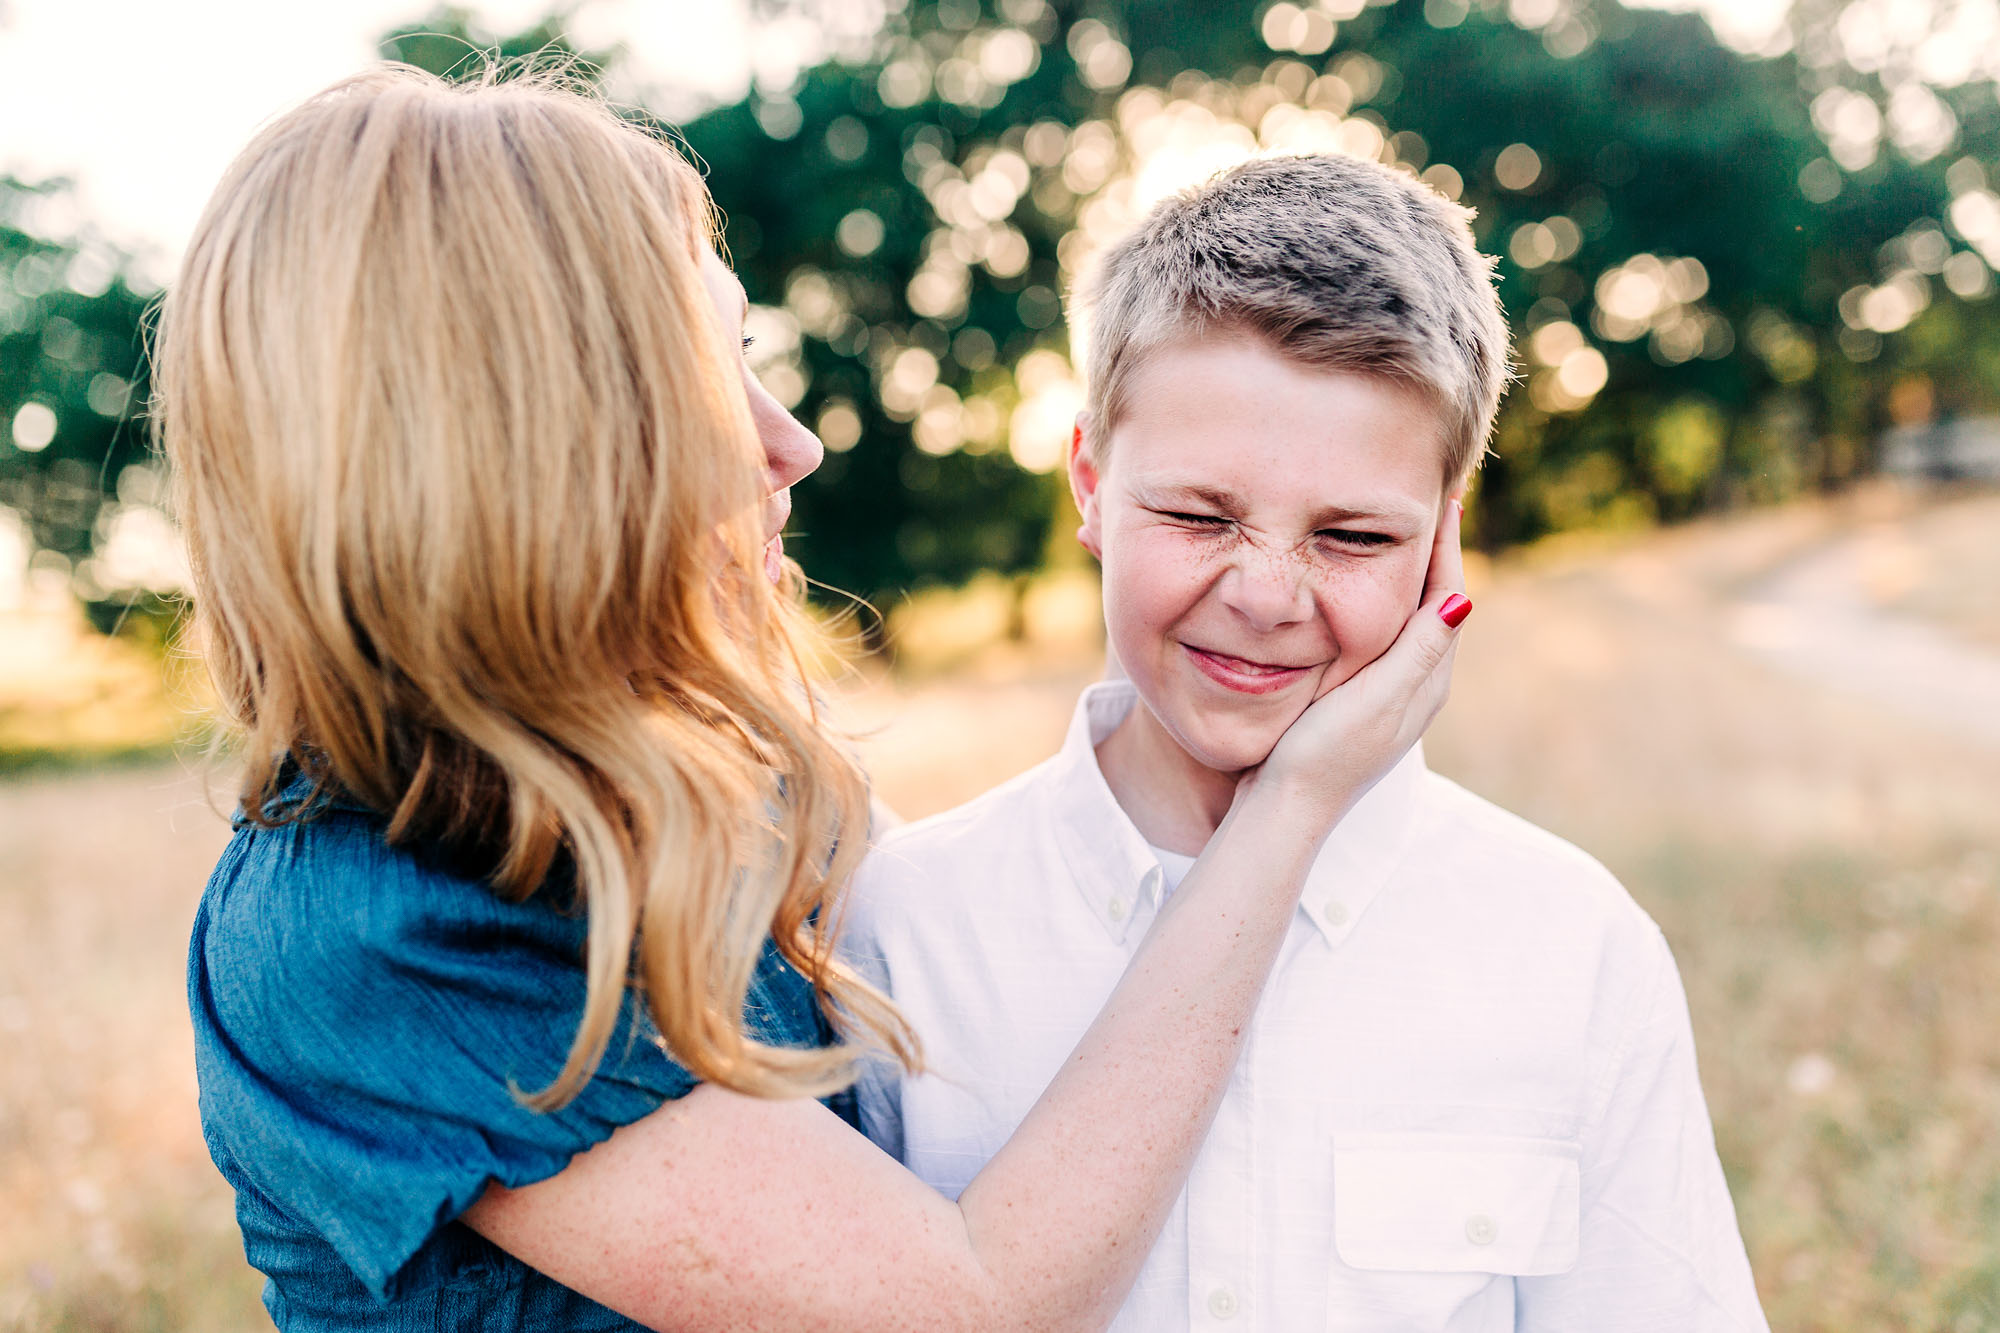 A mother cups her son's cheek during fun family pictures with lifestyle photographer Amy Wright in Roseville, California.